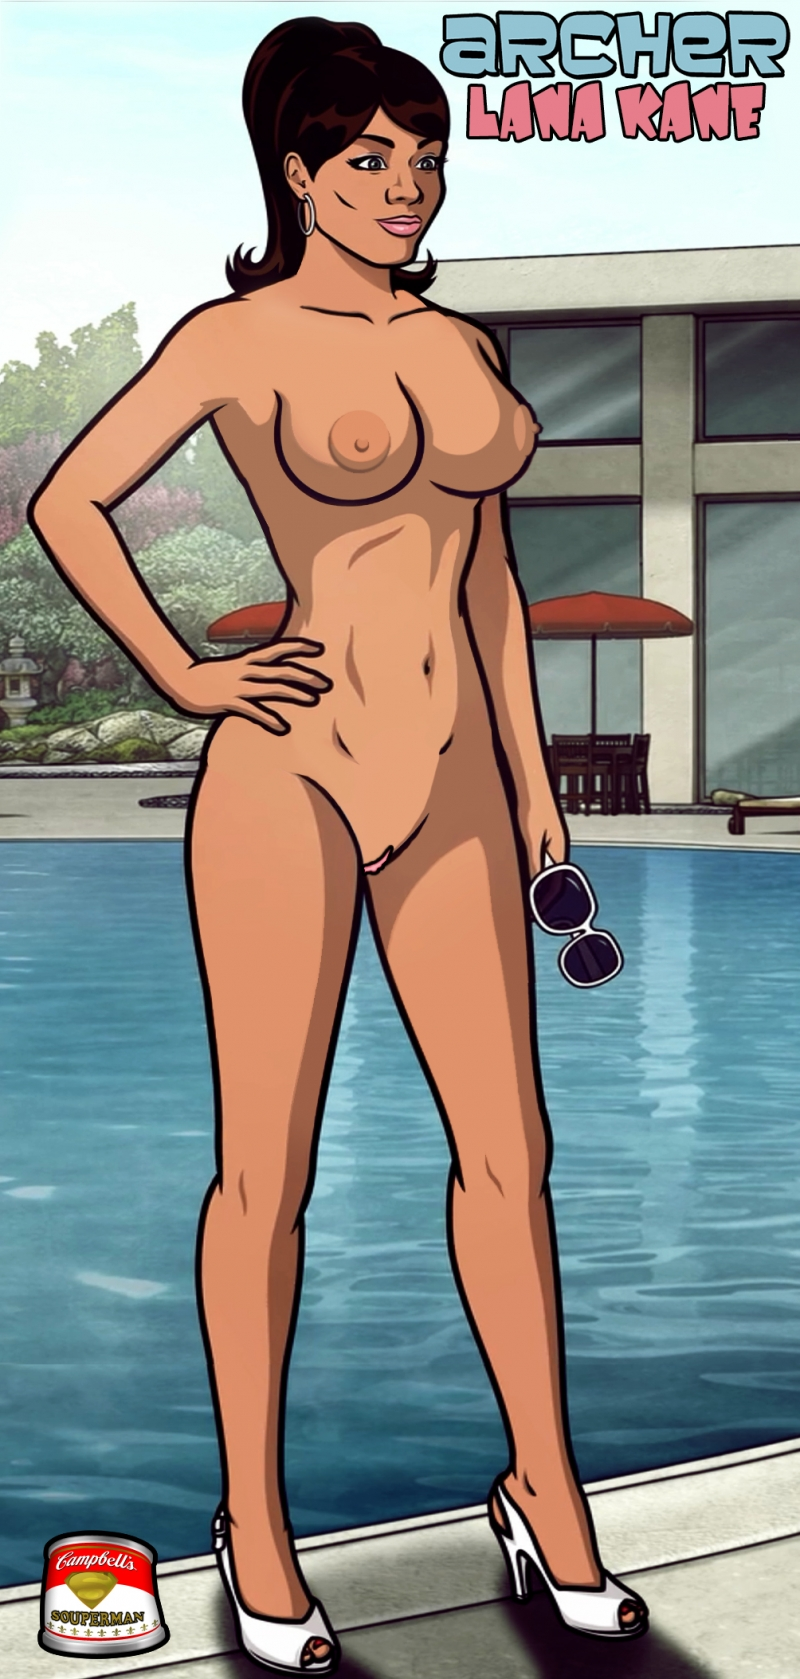 Archer pics of girls naked of cartoon porn gallery